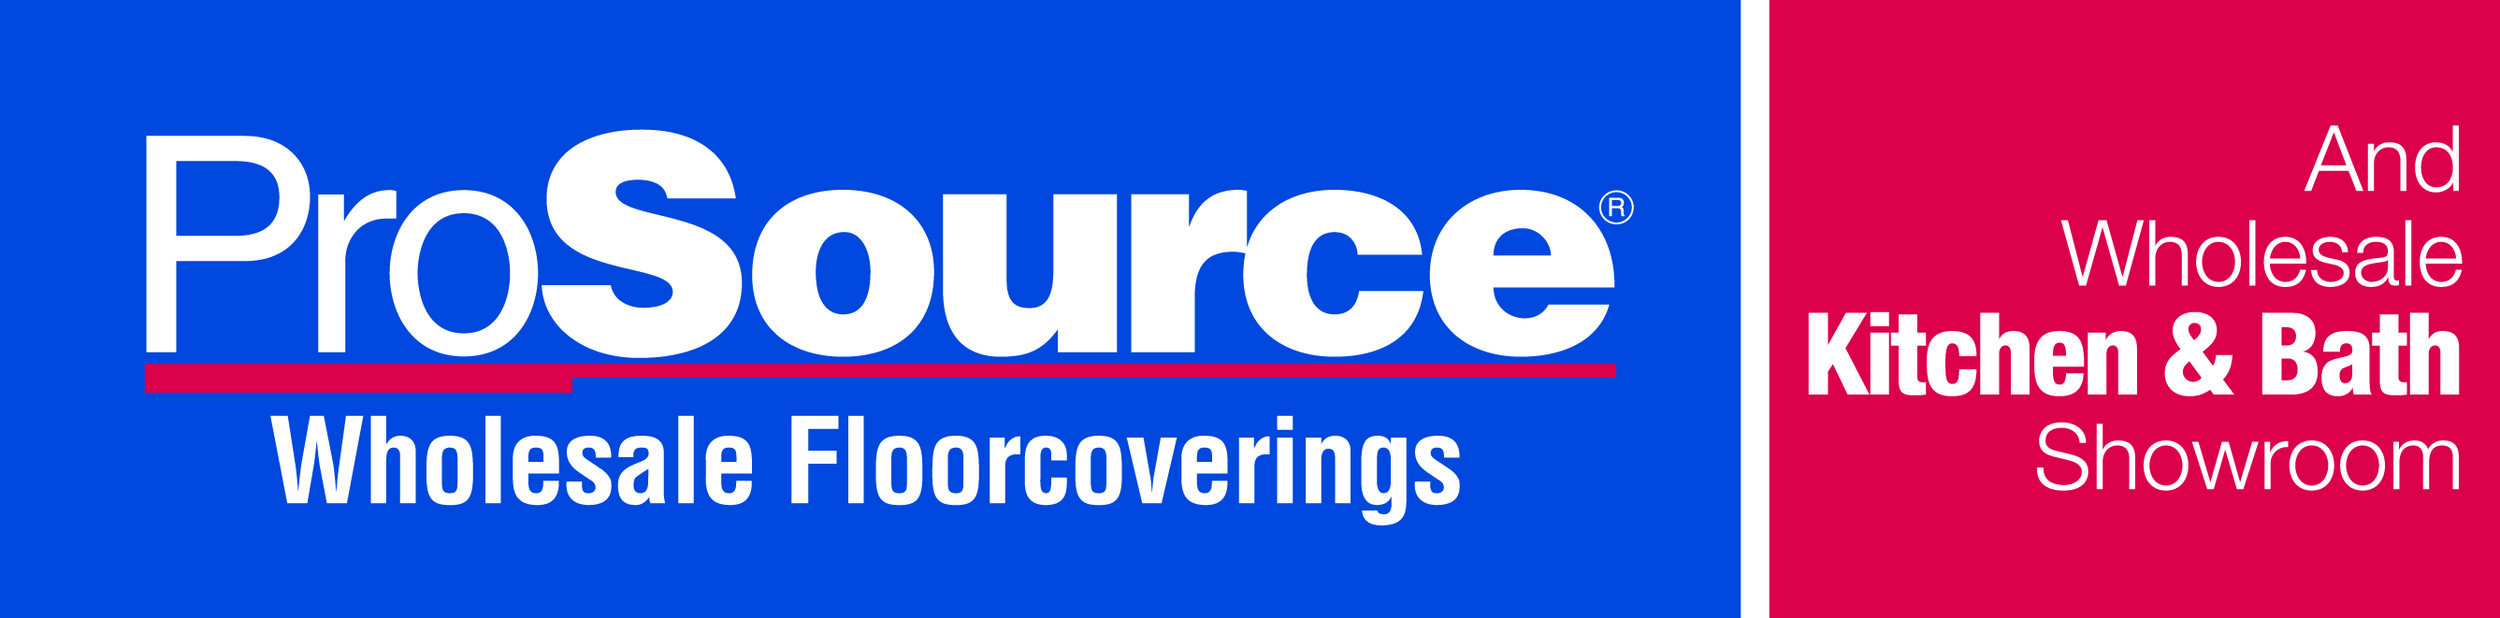 Logo for ProSource Wholesale Floorcoverings and Wholesale Kitchen & Bath Showroom